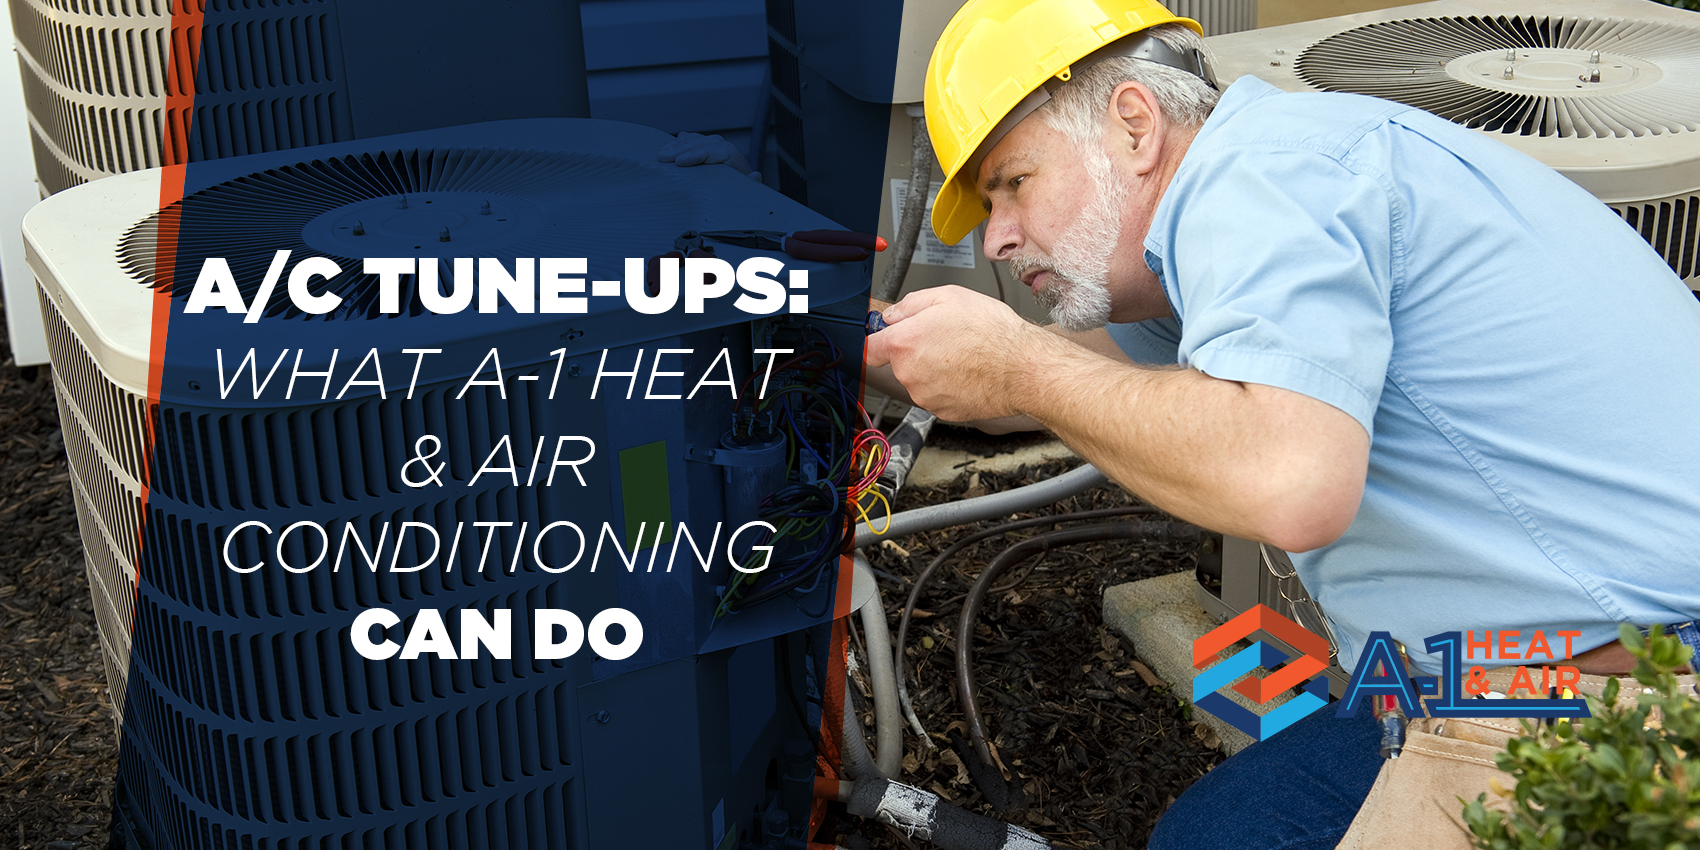 A/C Tune-Ups: What A-1 Heat & Air Conditioning Can Do